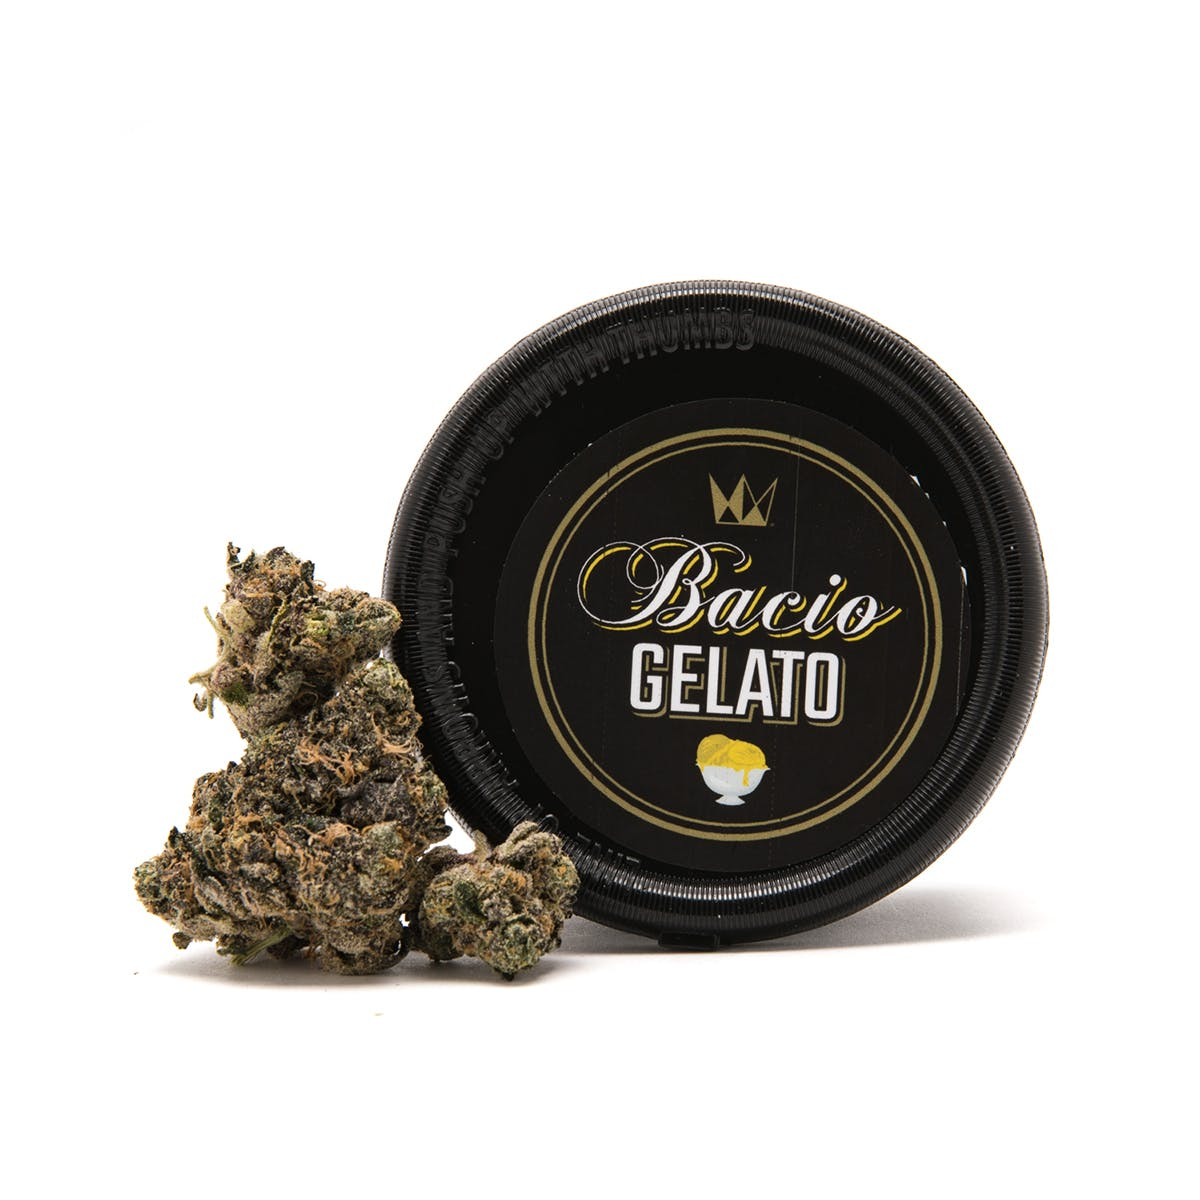 marijuana-dispensaries-fire-and-glory-fullerton-in-fullerton-bacio-gelato